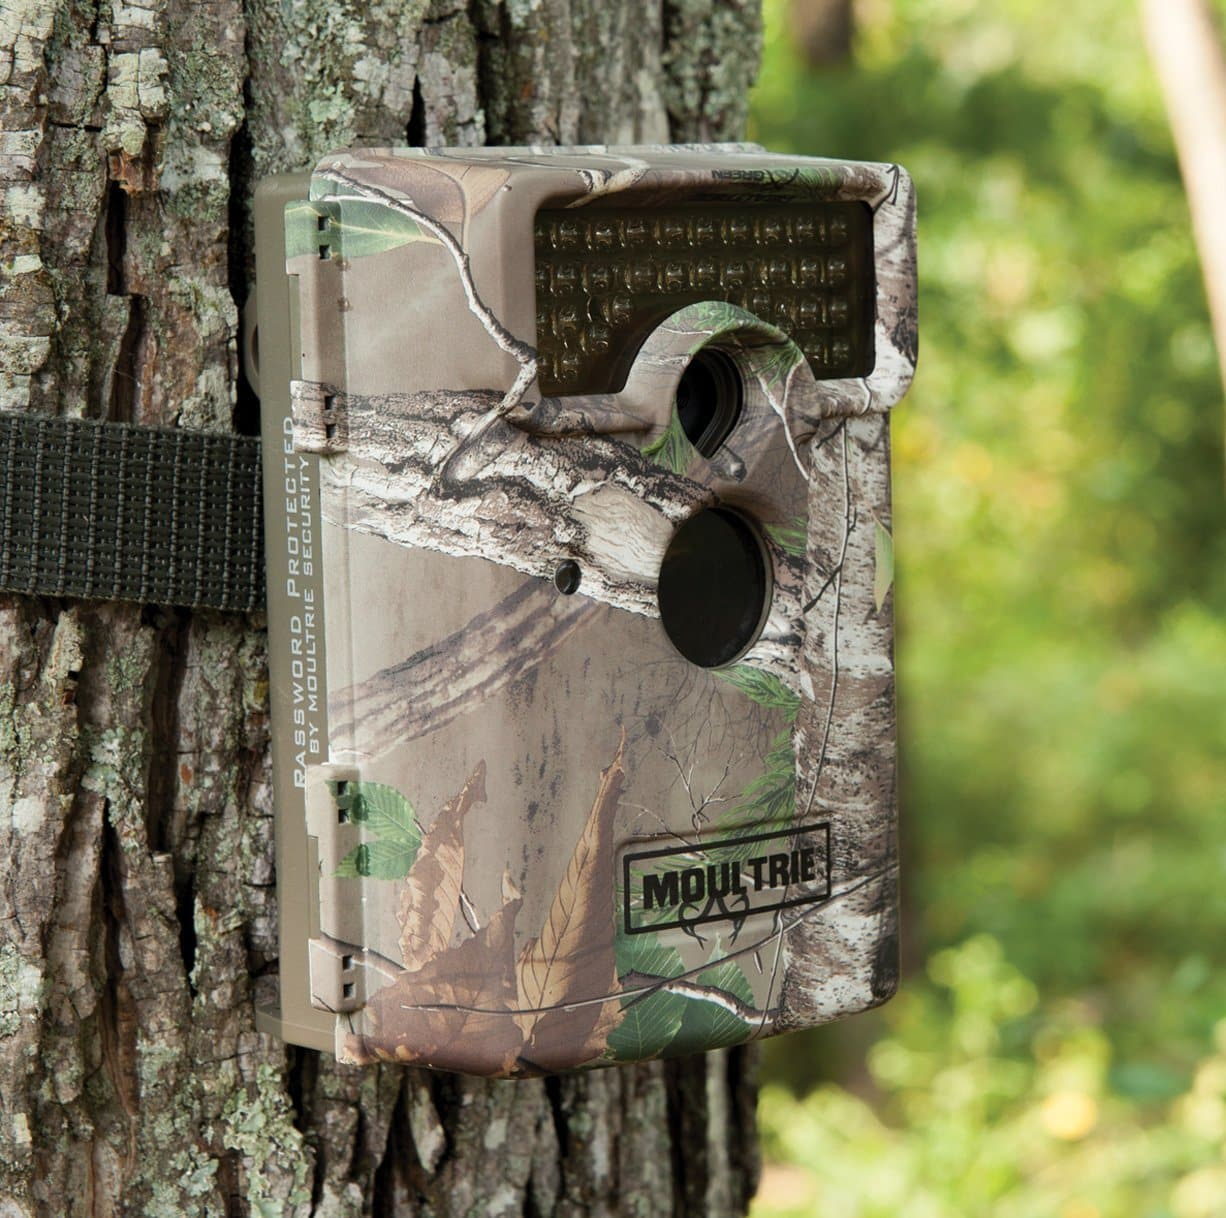 Moultrie M-1100i - outside